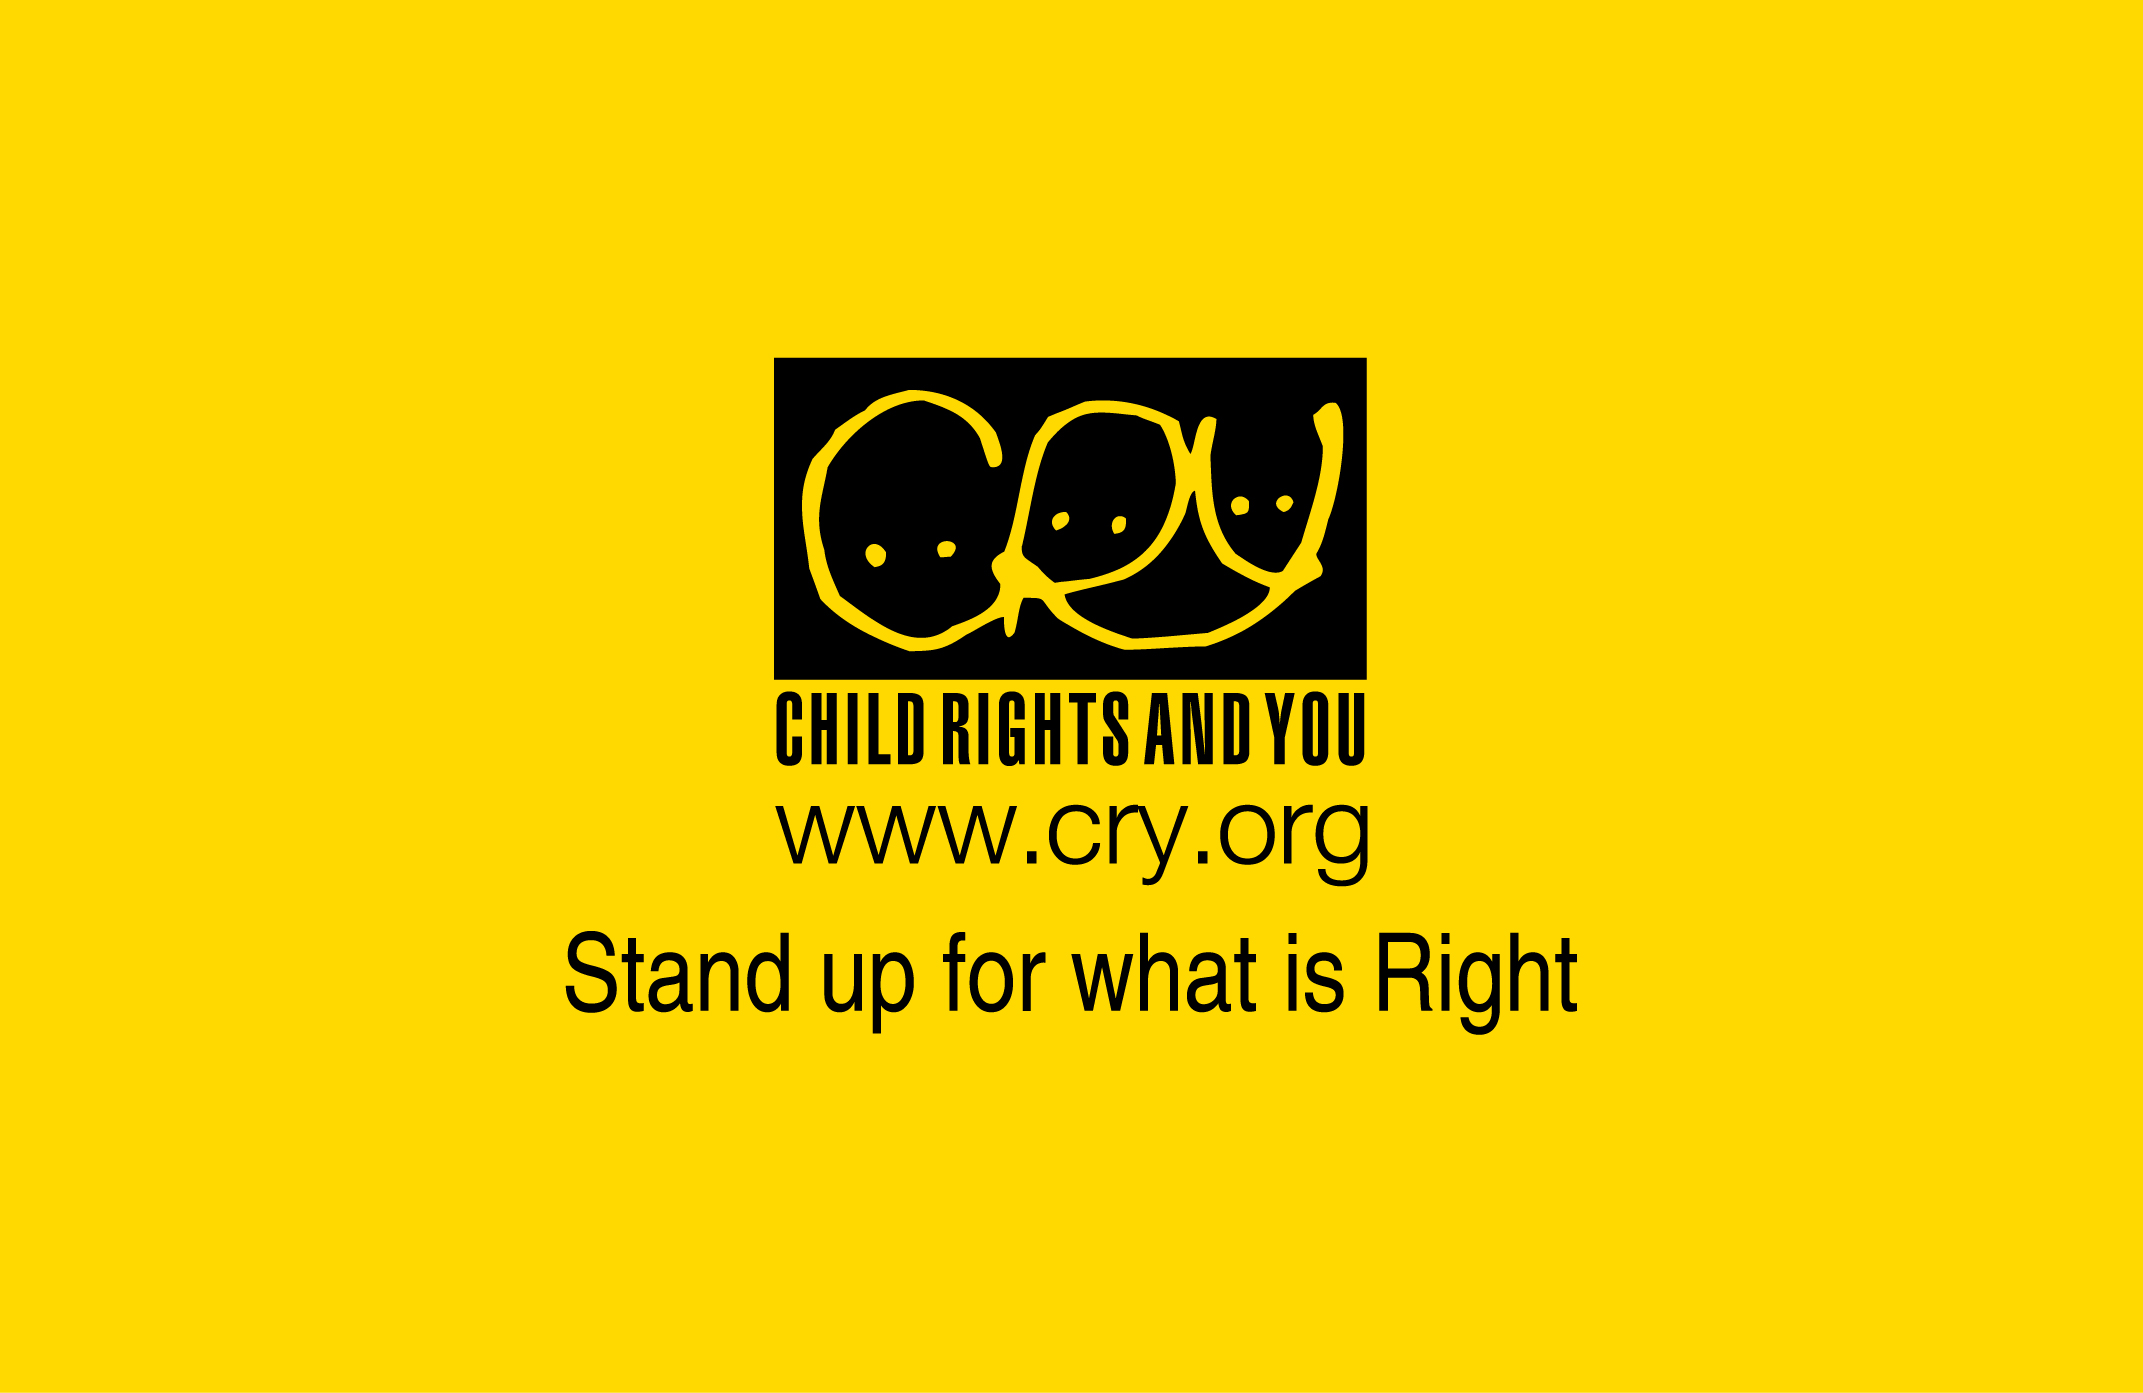 CRY – Child Rights and You